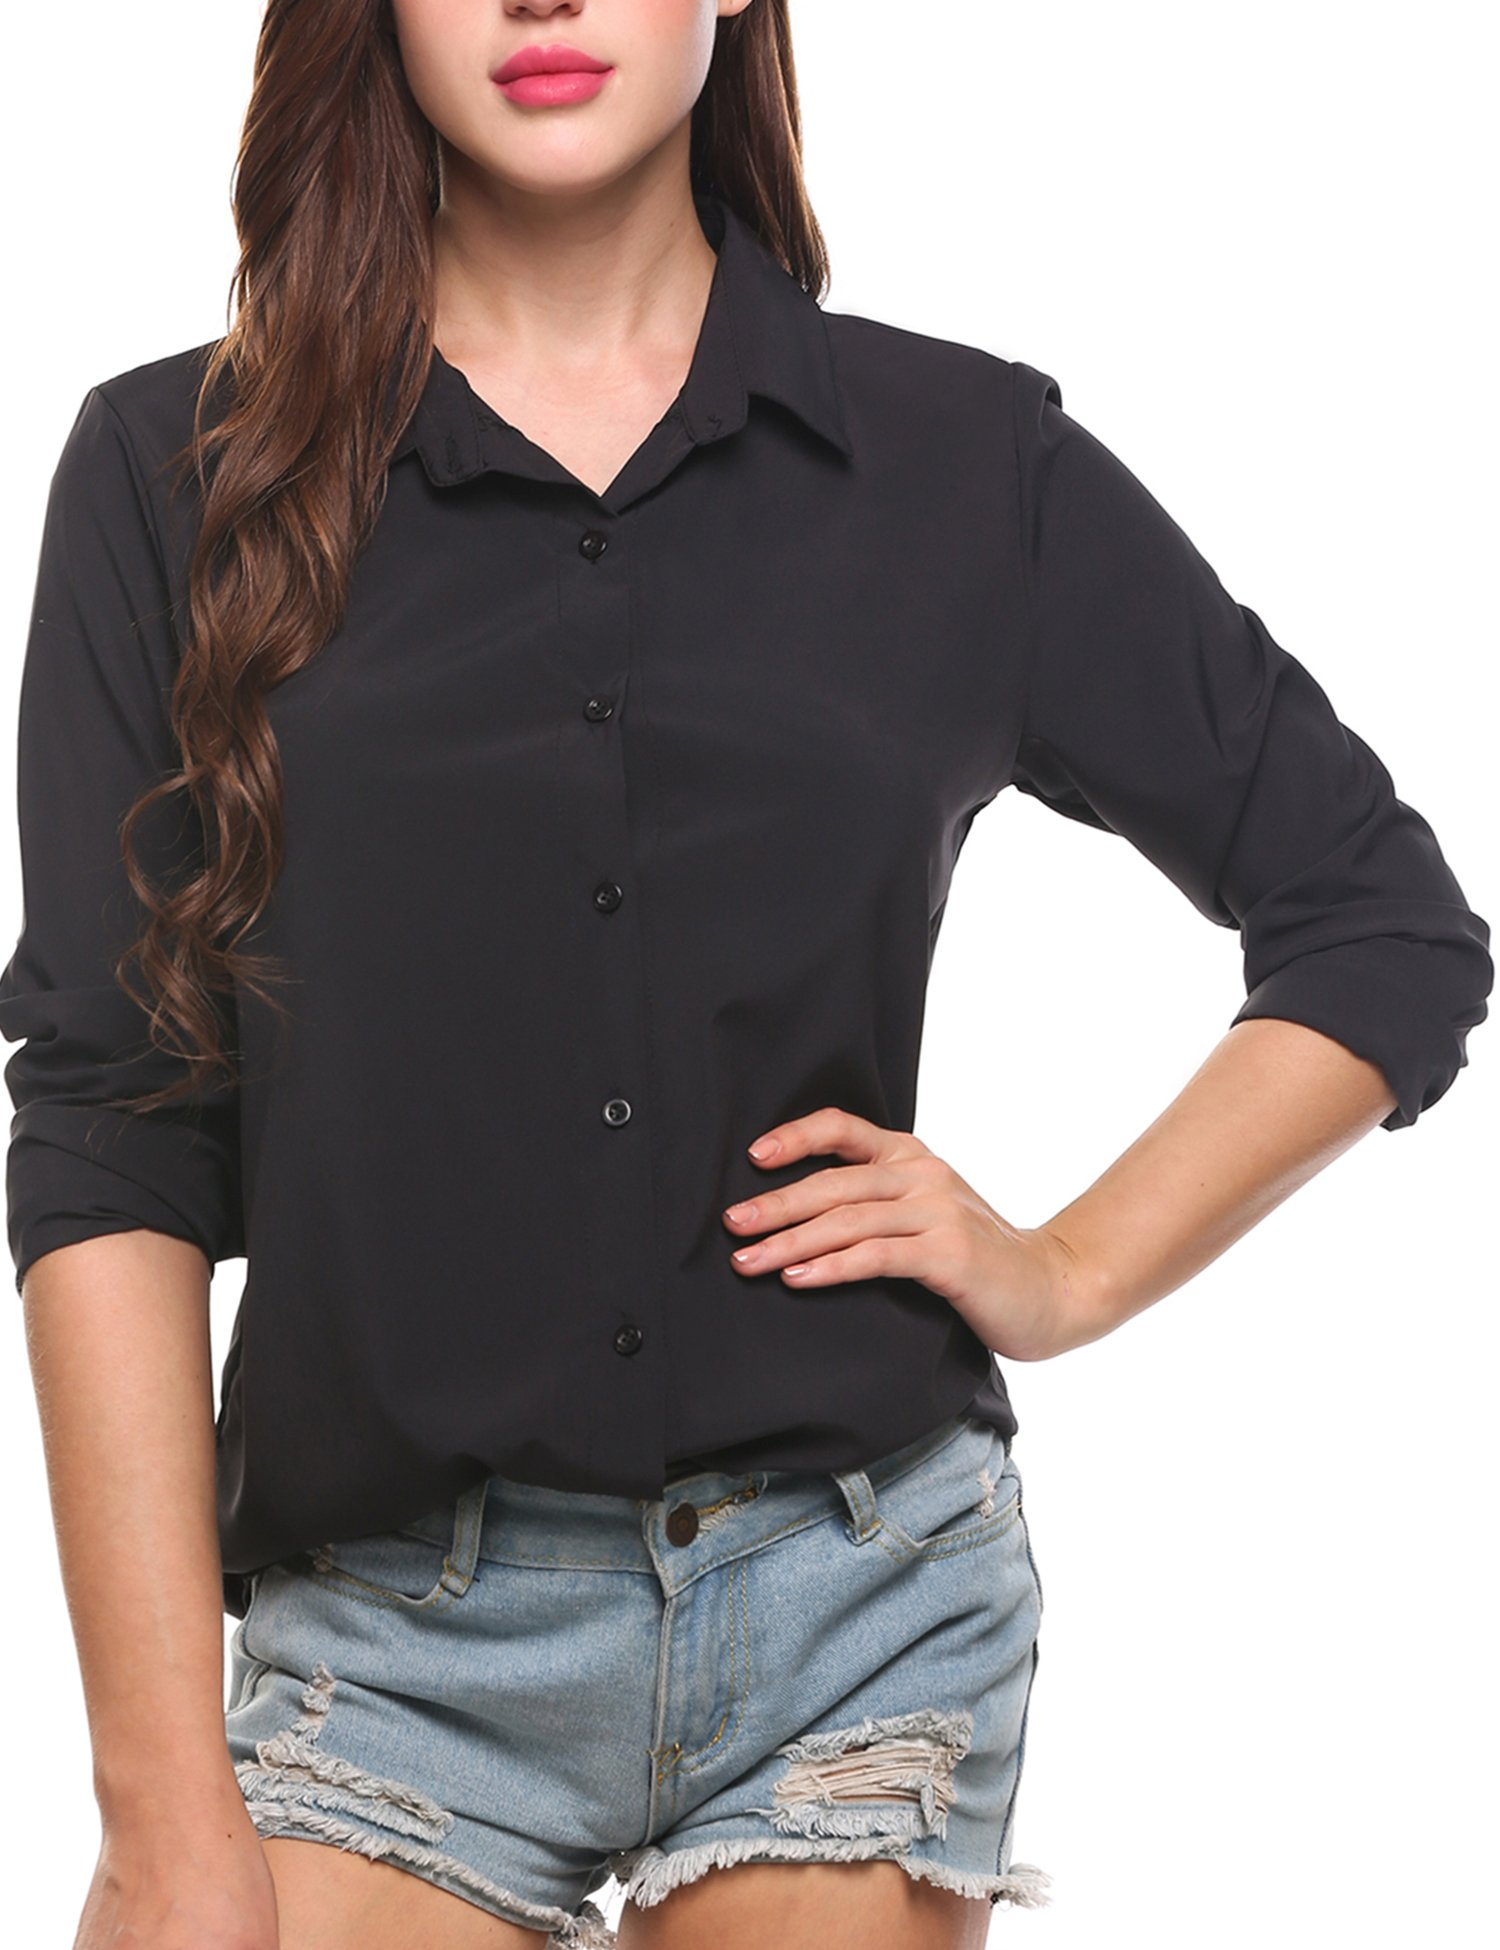 Zeagoo Women's Long Sleeve Casual Polka Dot Button up Office Blouse Shirt Top, Solid Black, XX-Large